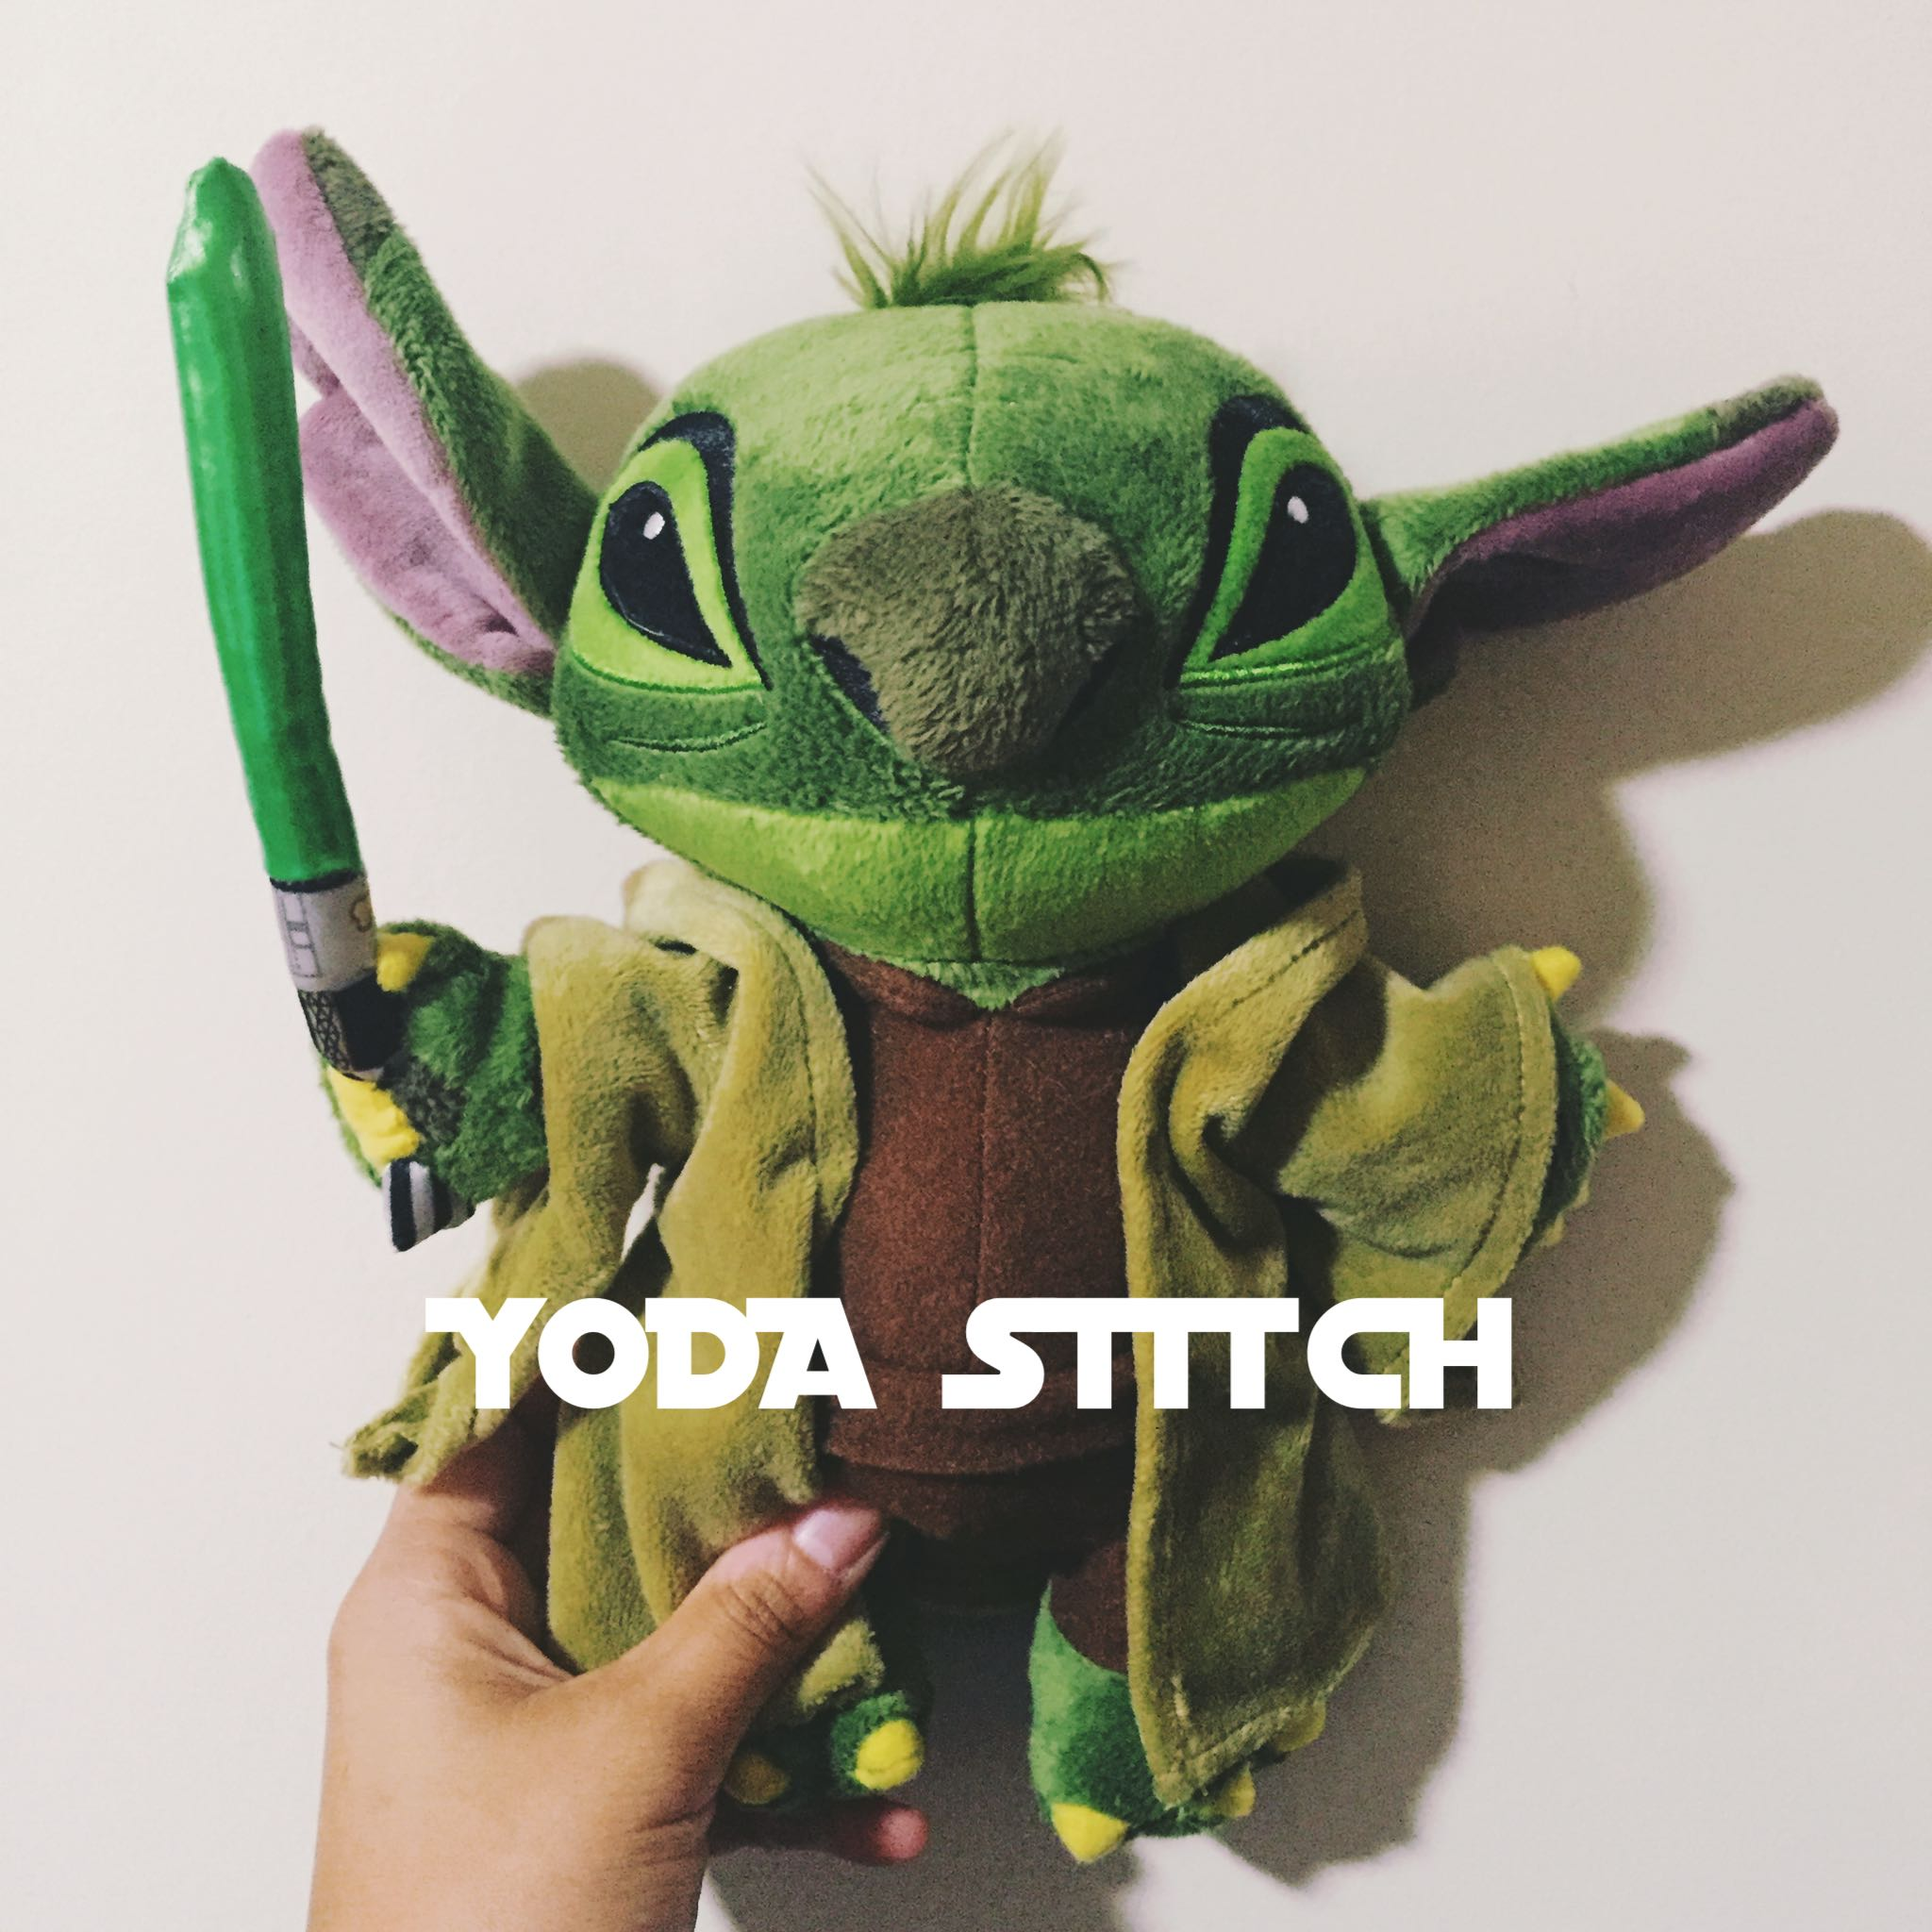 yodastitch